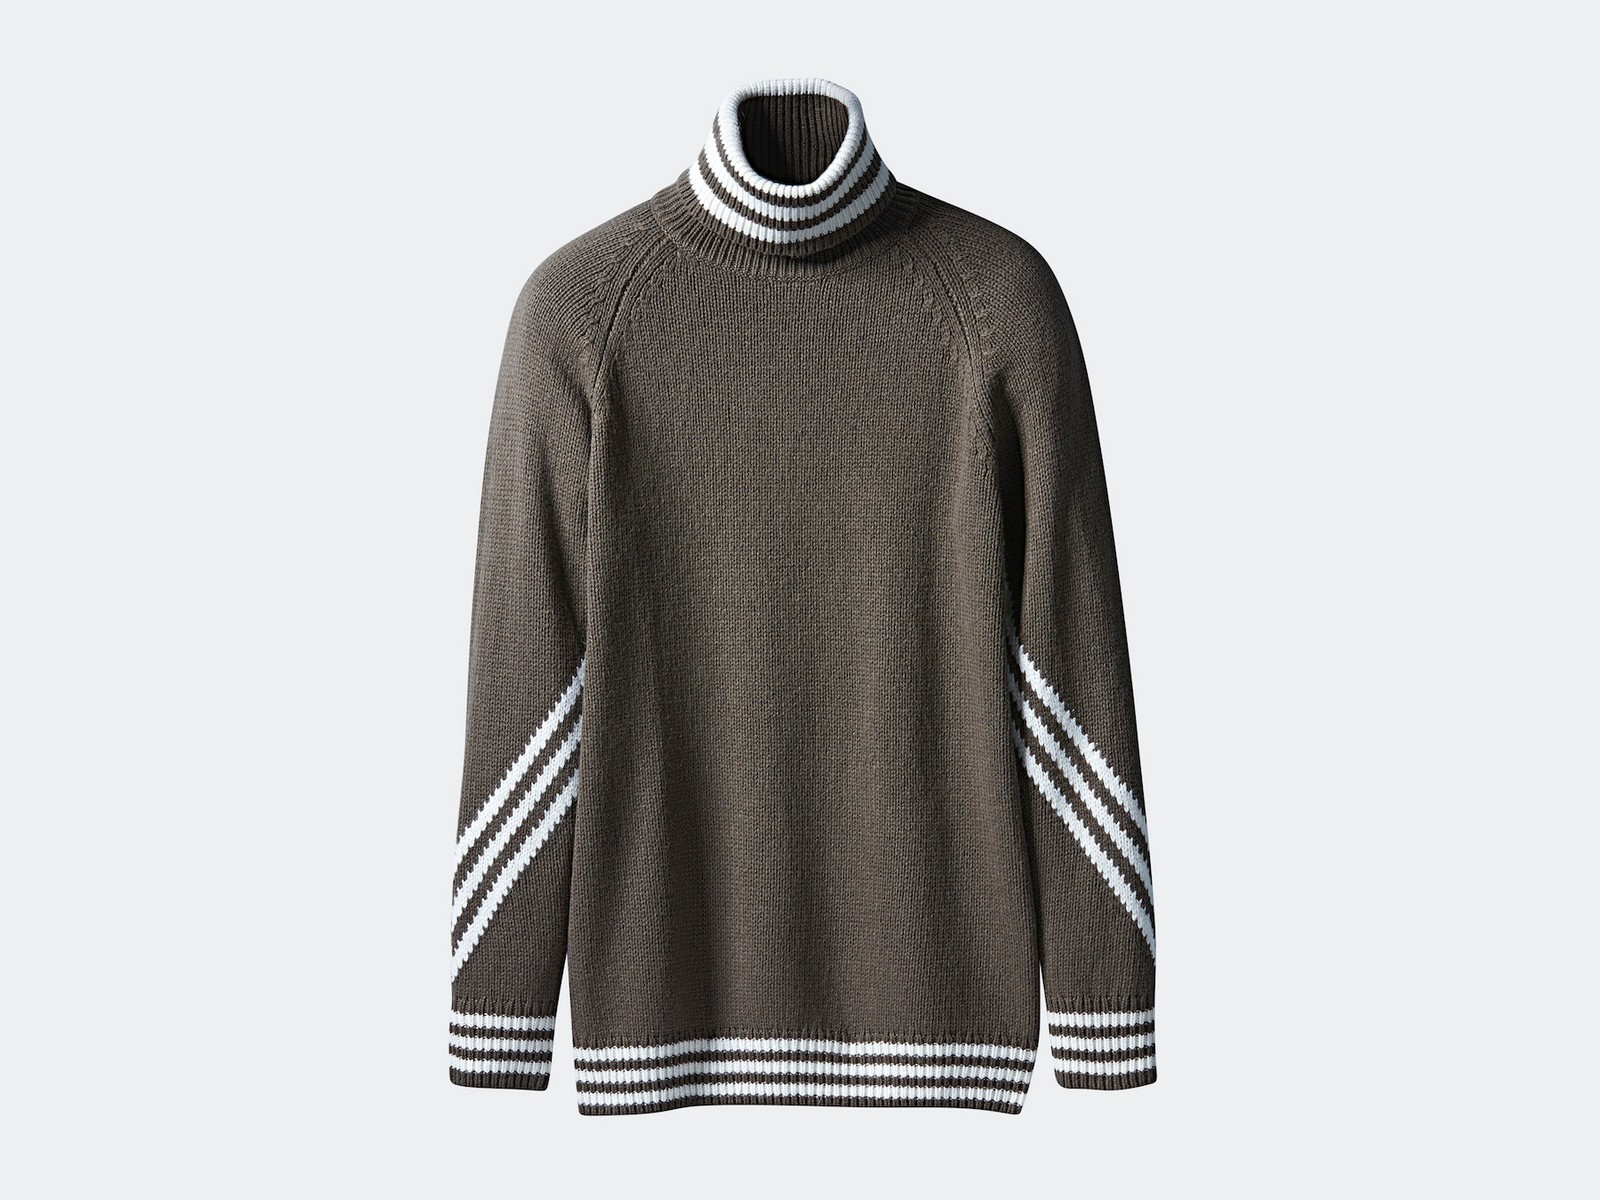 adidas Originals by White Mountaineering 2017 Fall/Winter Second Drop